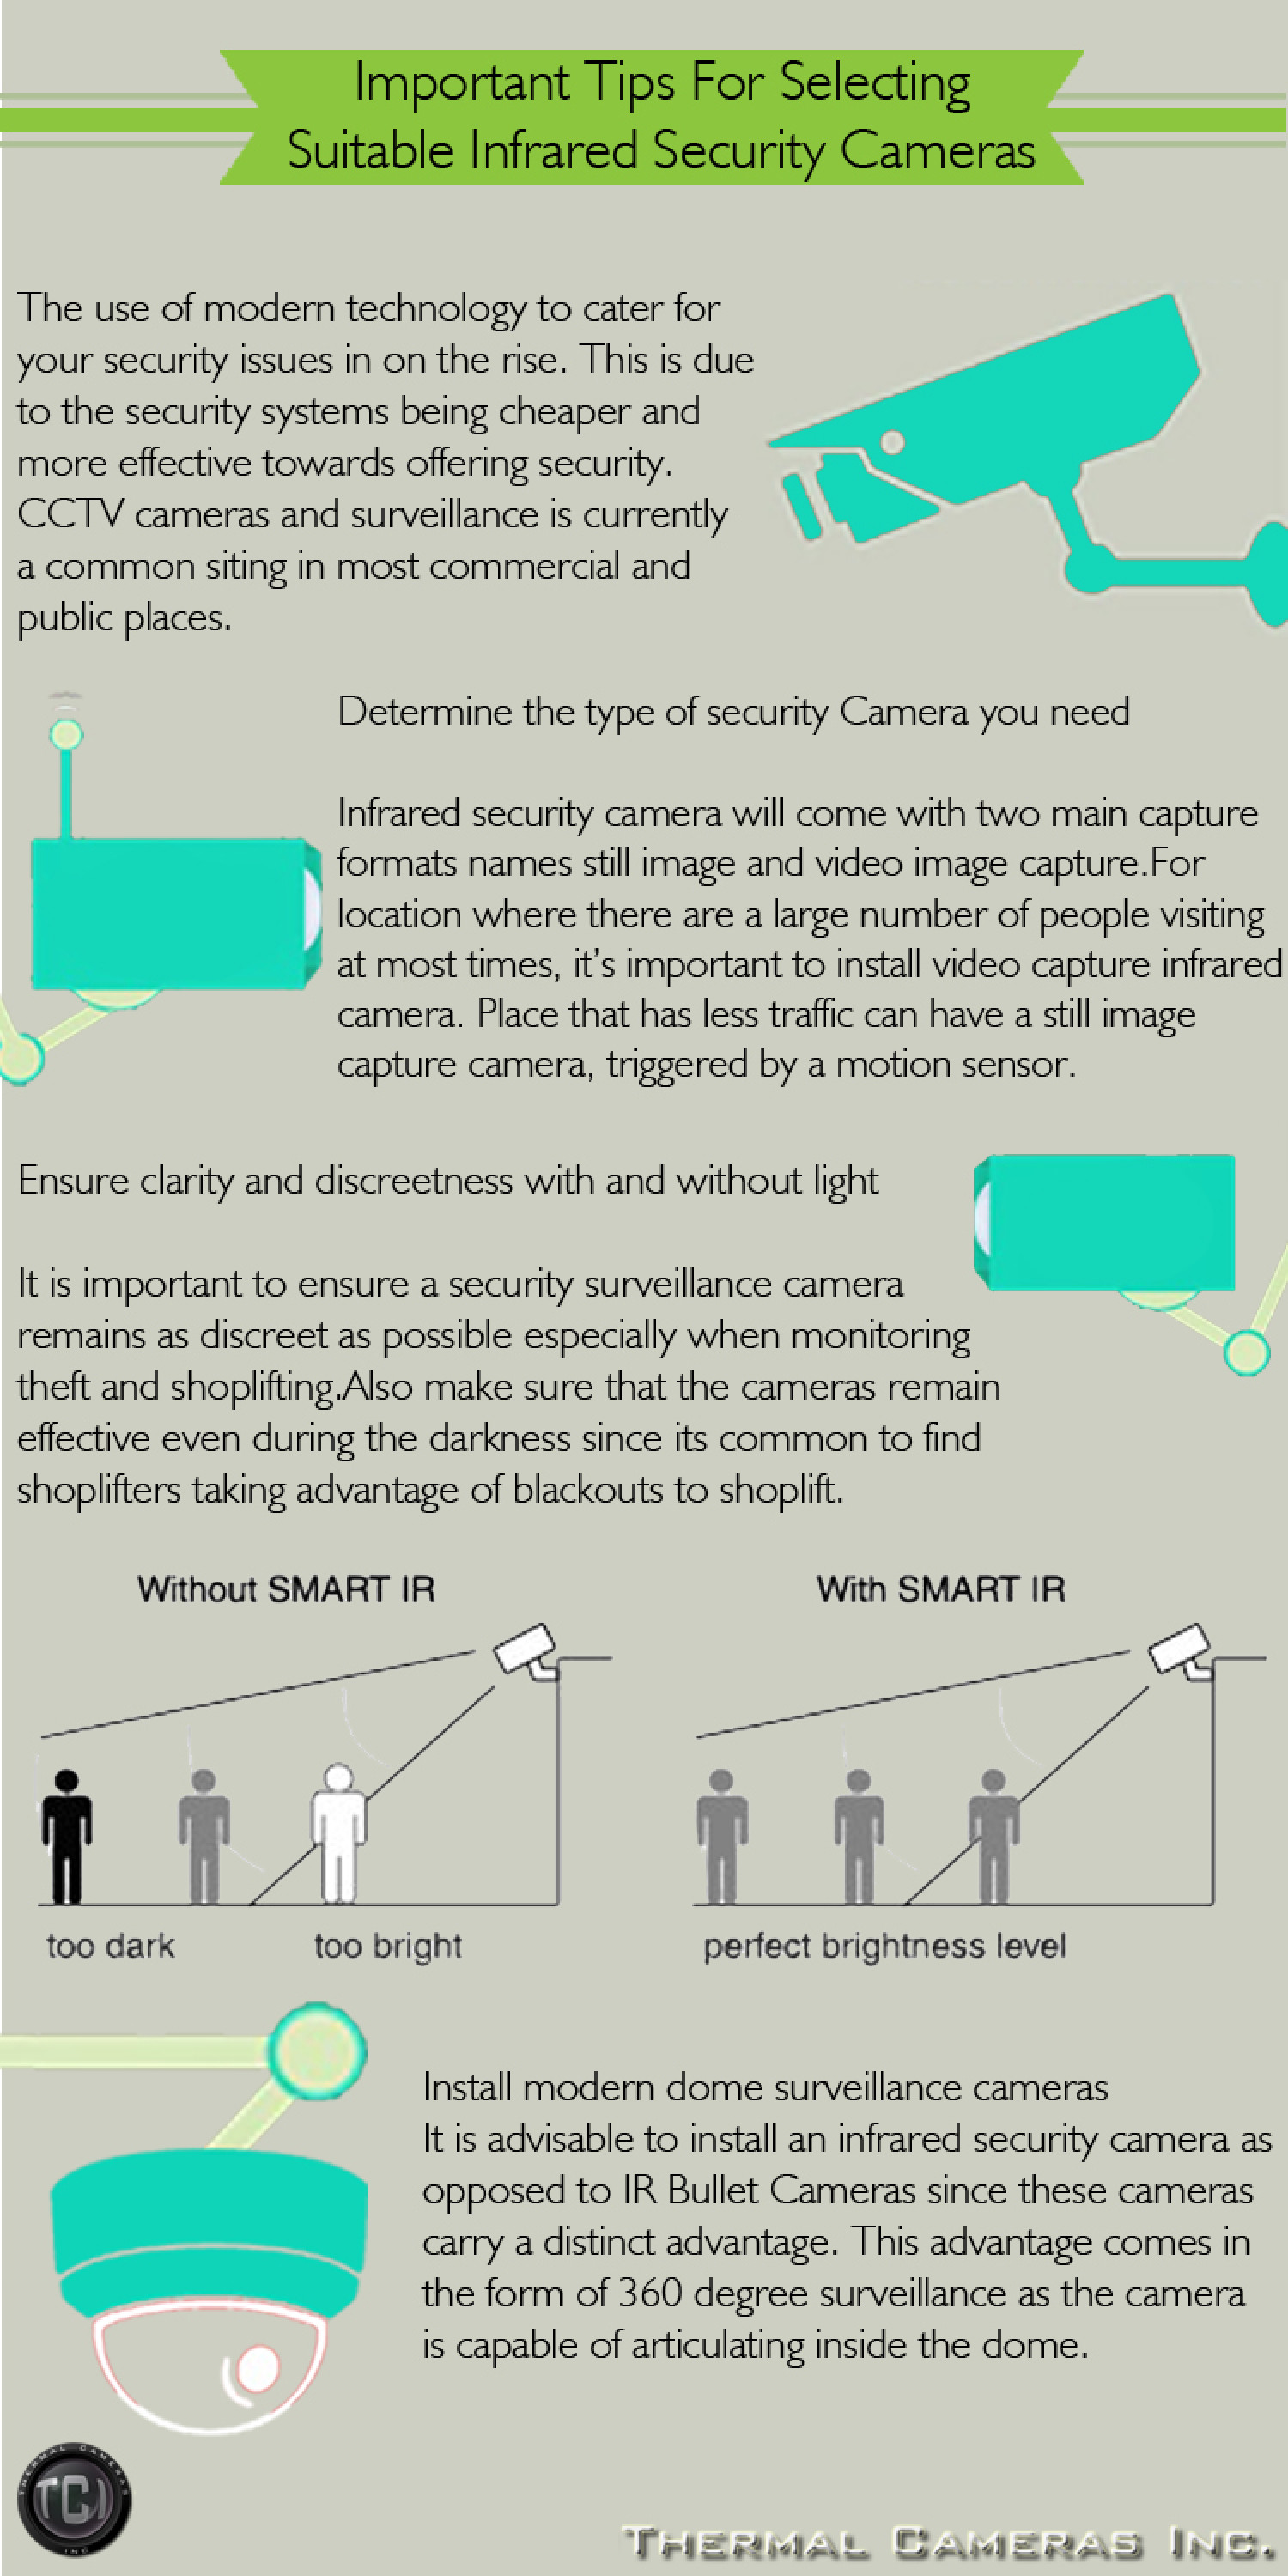 Important Tips For Selecting Suitable Infrared Security ...